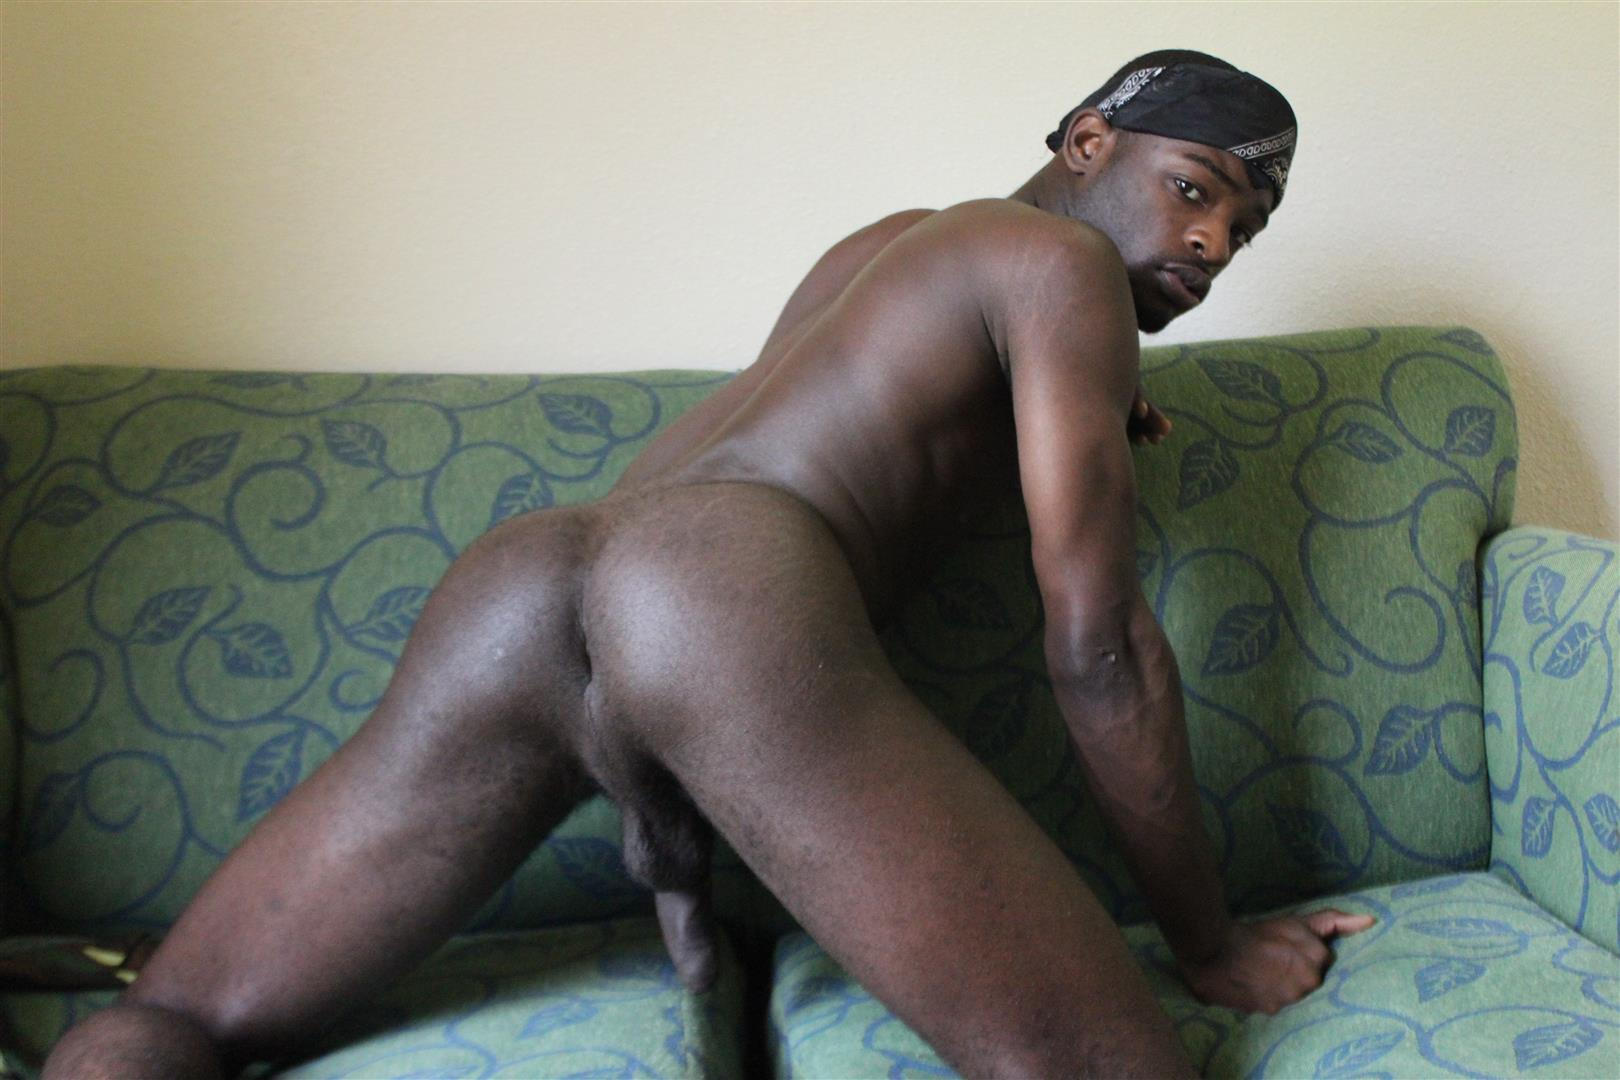 Traphouse-Boys-Brown-and-Carlos-Big-Black-Cock-Bareback-Amateur-Gay-Porn-03 DL Thugs Barebacking With Their Big Uncut Black Dicks